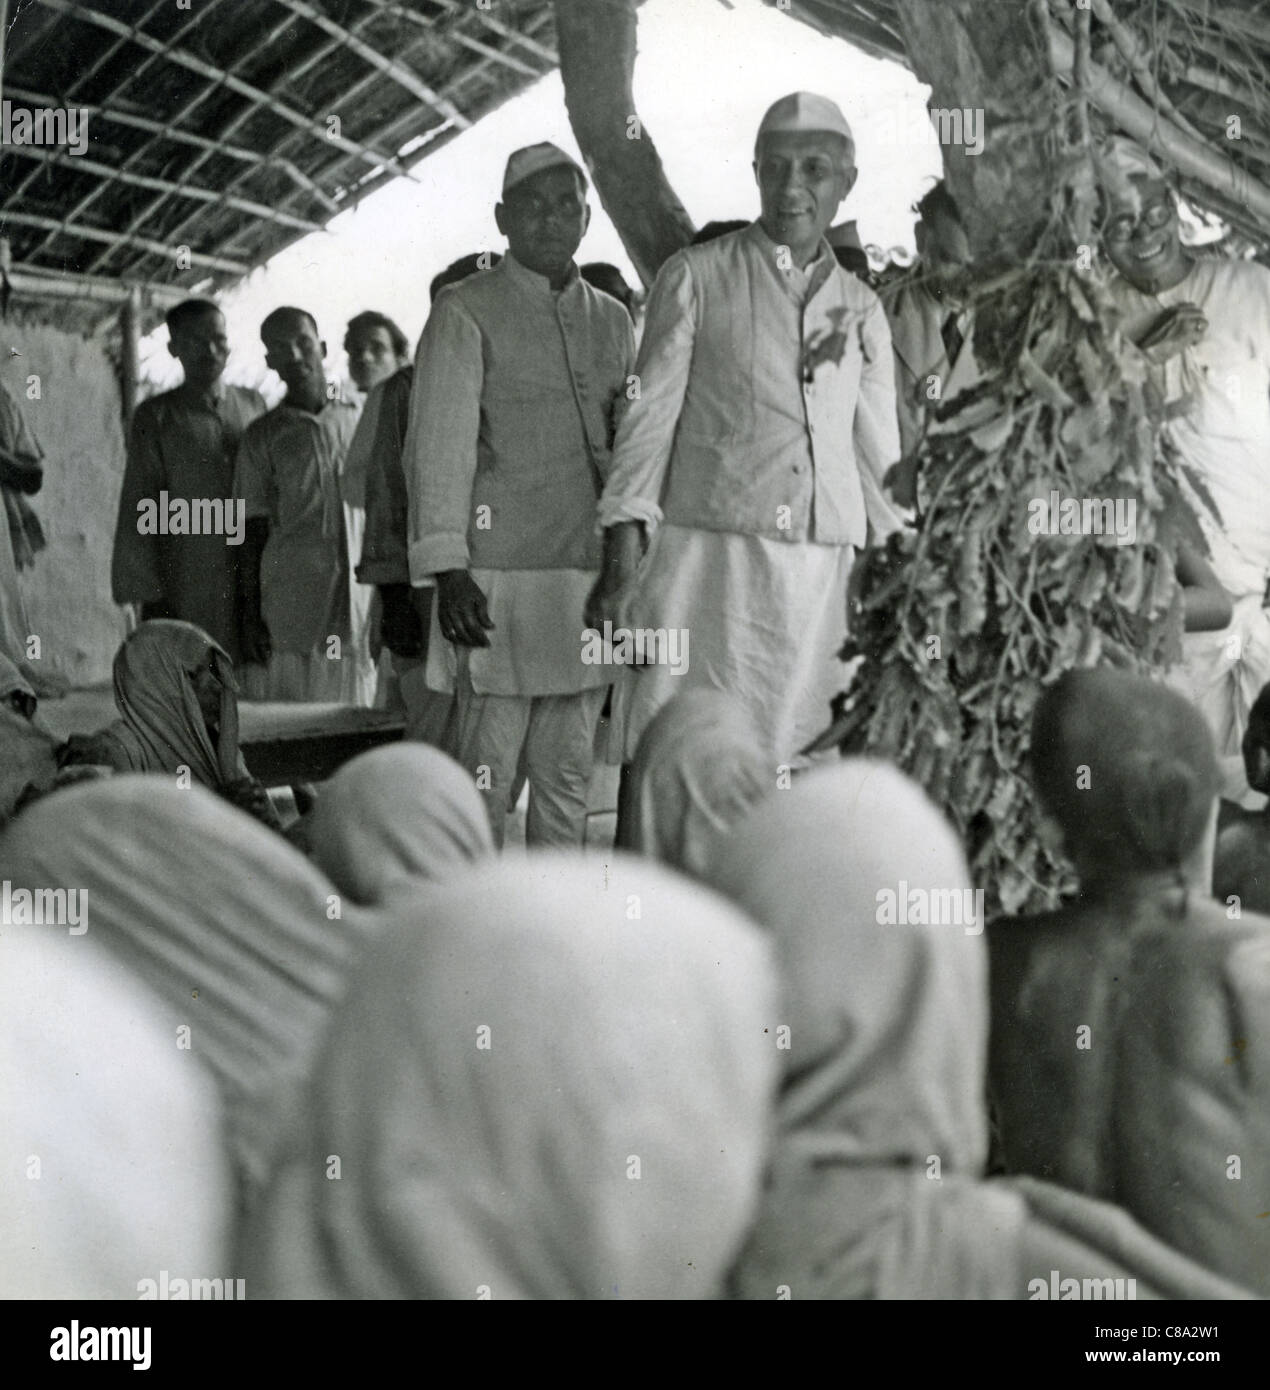 JAWAHARLAL NEHRU (1889-1964) as Indian Prime Minister at a Bihari famine relief centre about 1960 - Stock Image